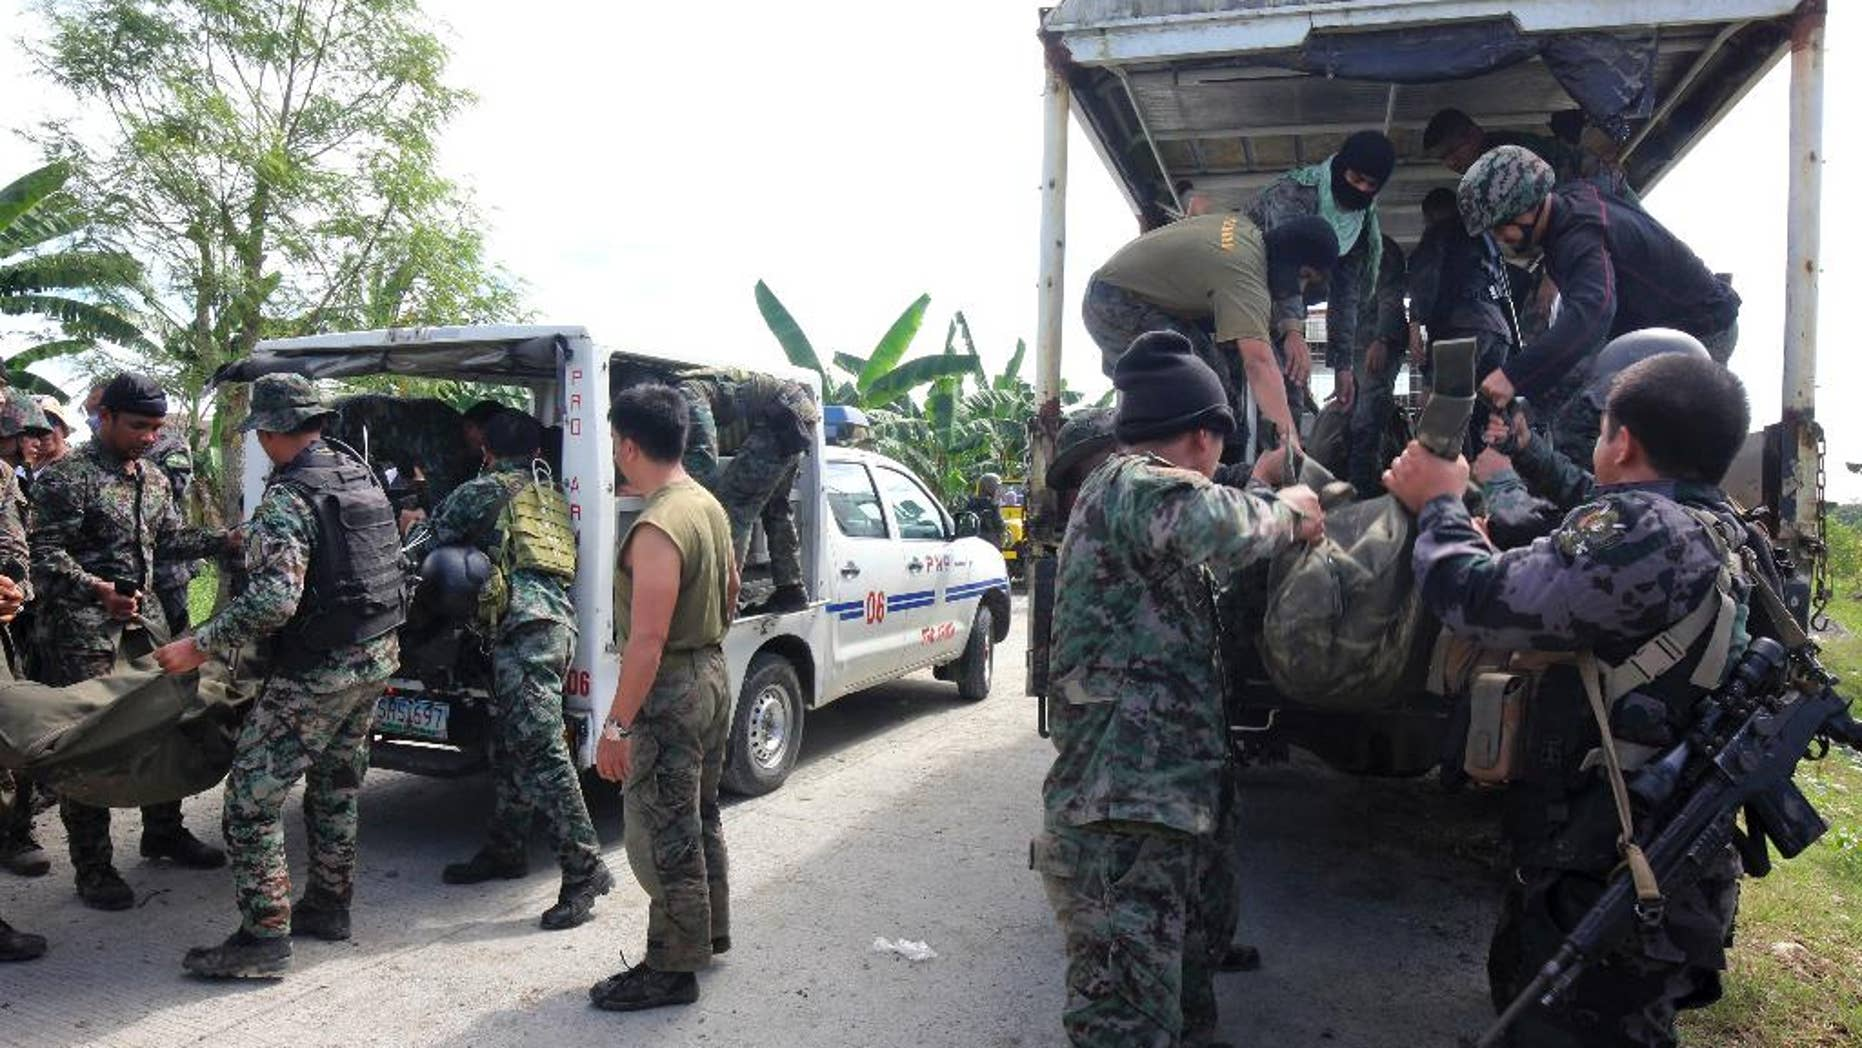 Members of the Philippine National Police Special Action Forces load bodies of police commandos into vehicles in Maguindanao, Philippines, Monday, Jan. 26, 2015. More than 40 Philippine police commandos were killed in a fierce battle with Muslim guerrillas after launching an assault in which they may have killed one of southeast Asia's most-wanted terrorists, officials said Monday. (AP Photo)